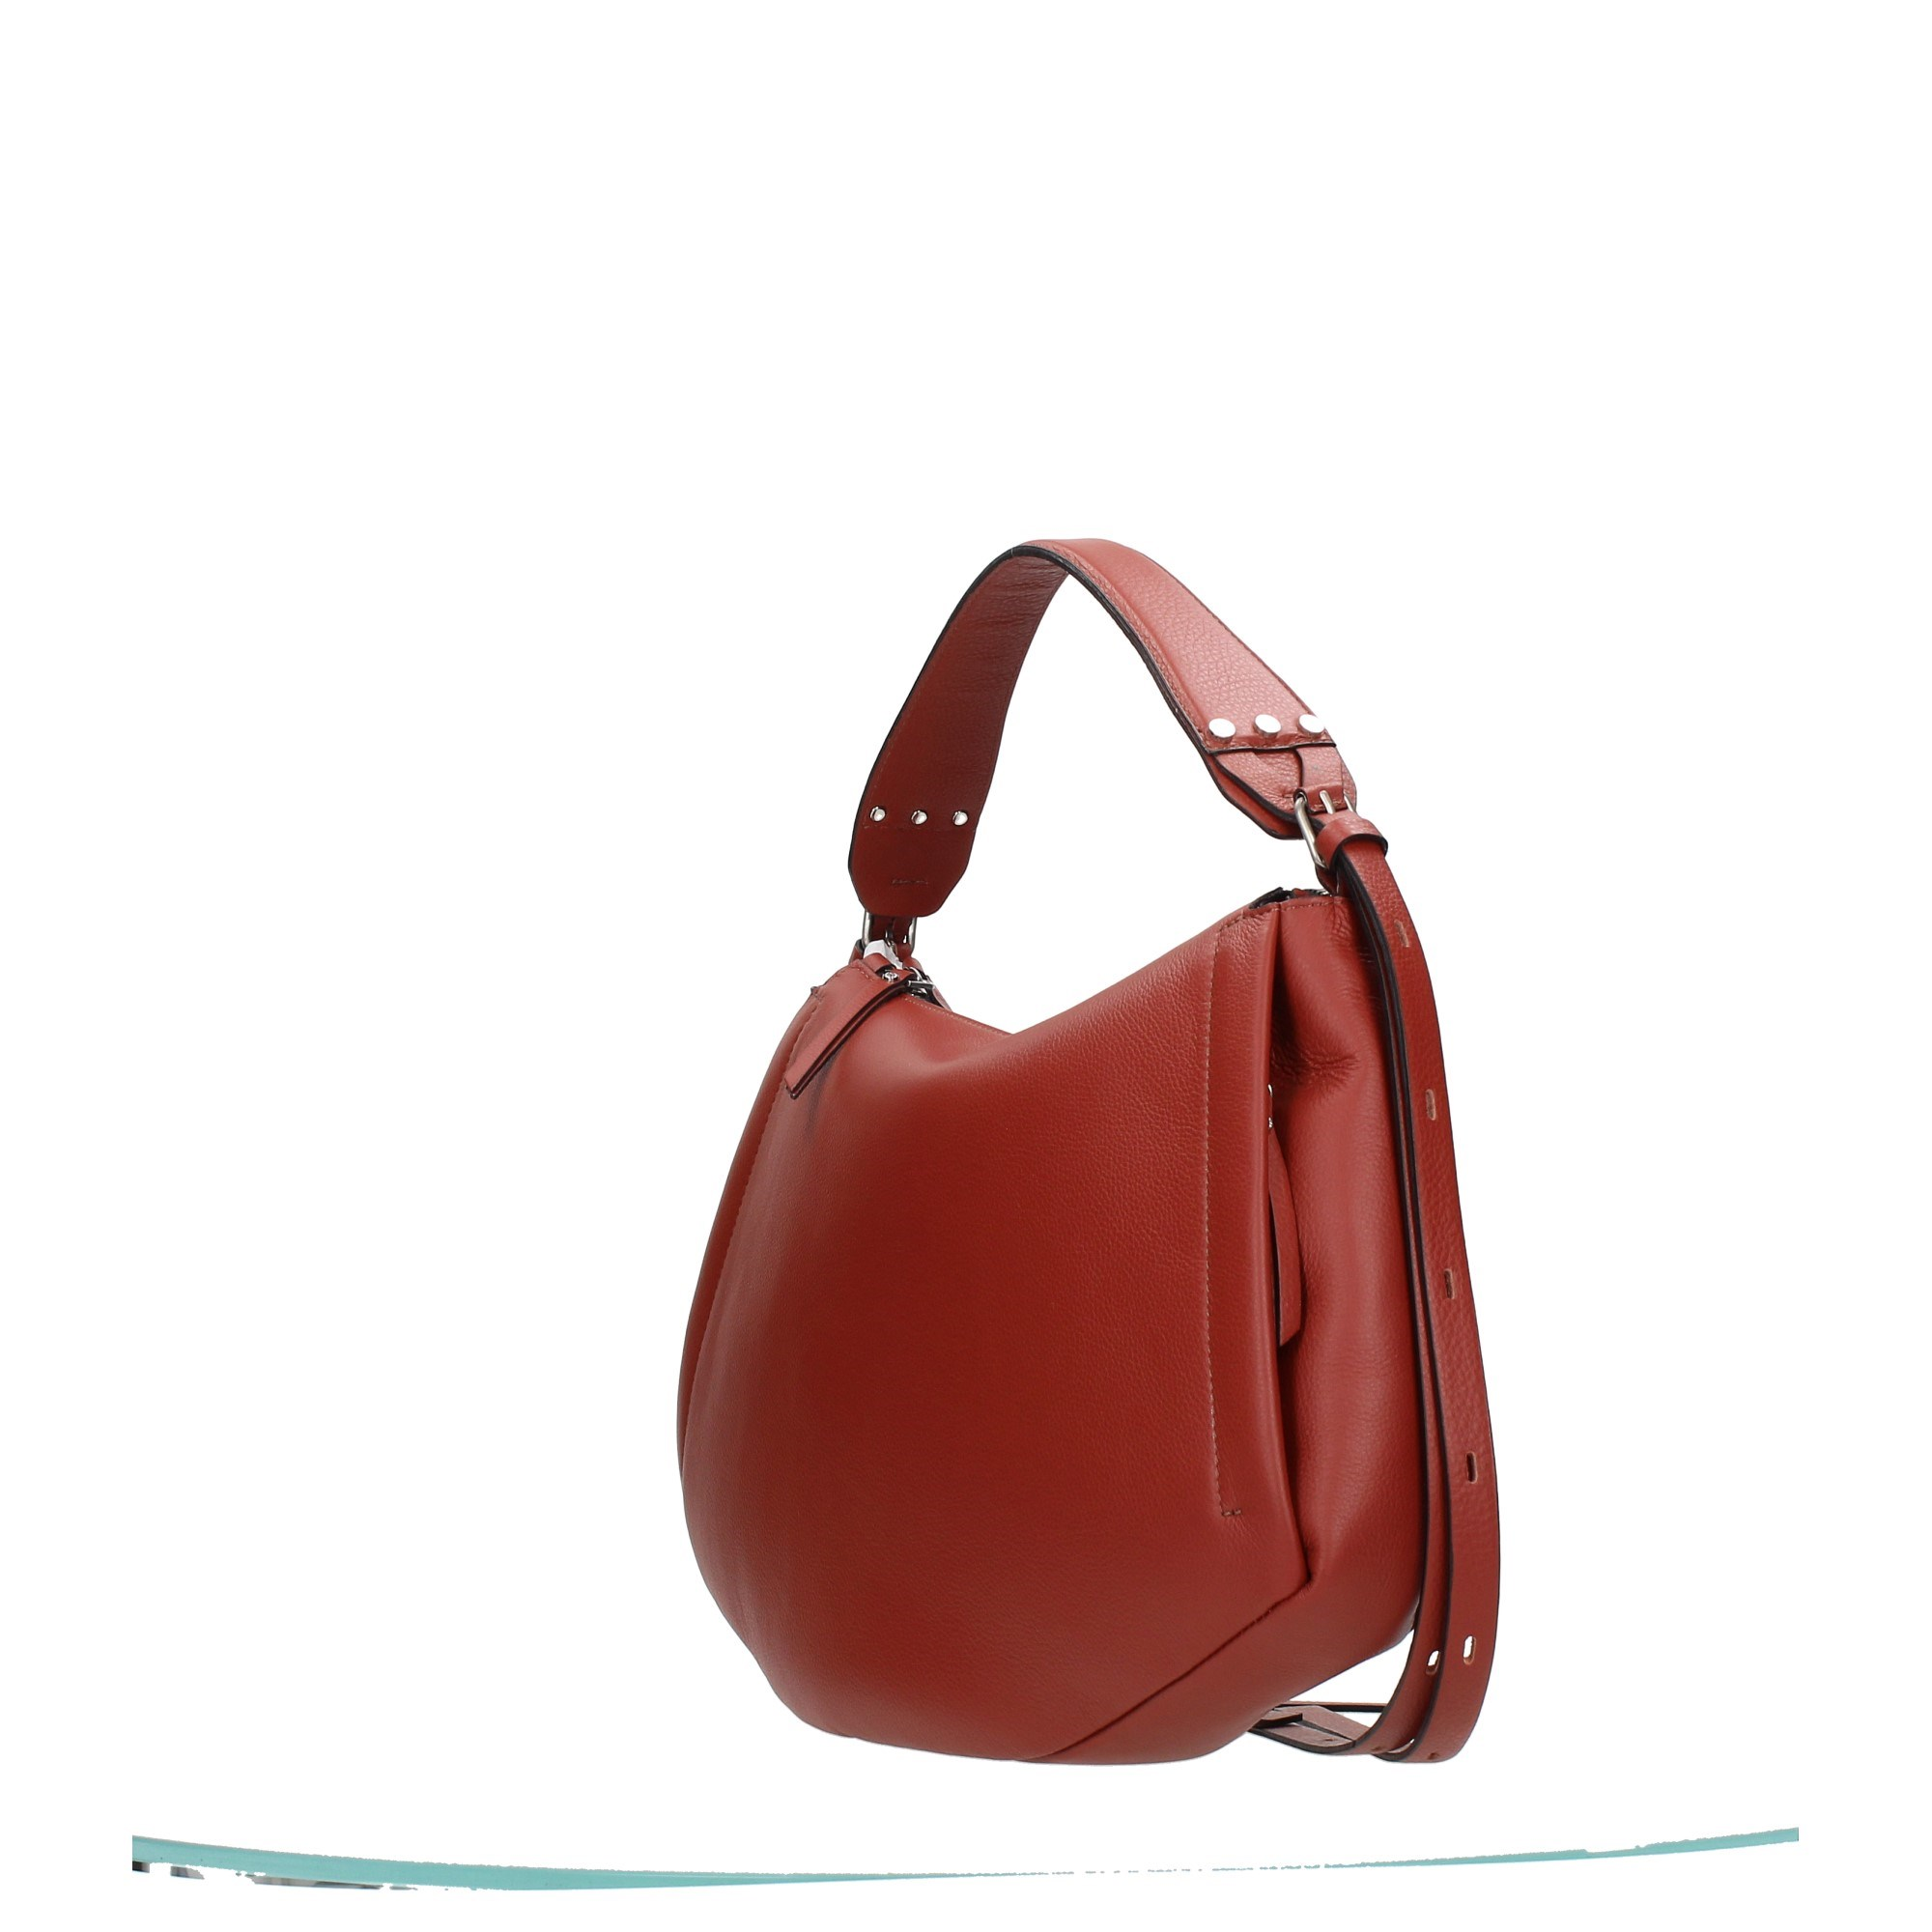 Gianni Chiarini Accessories Women Shoulder Bags Brown BS7961 STSR